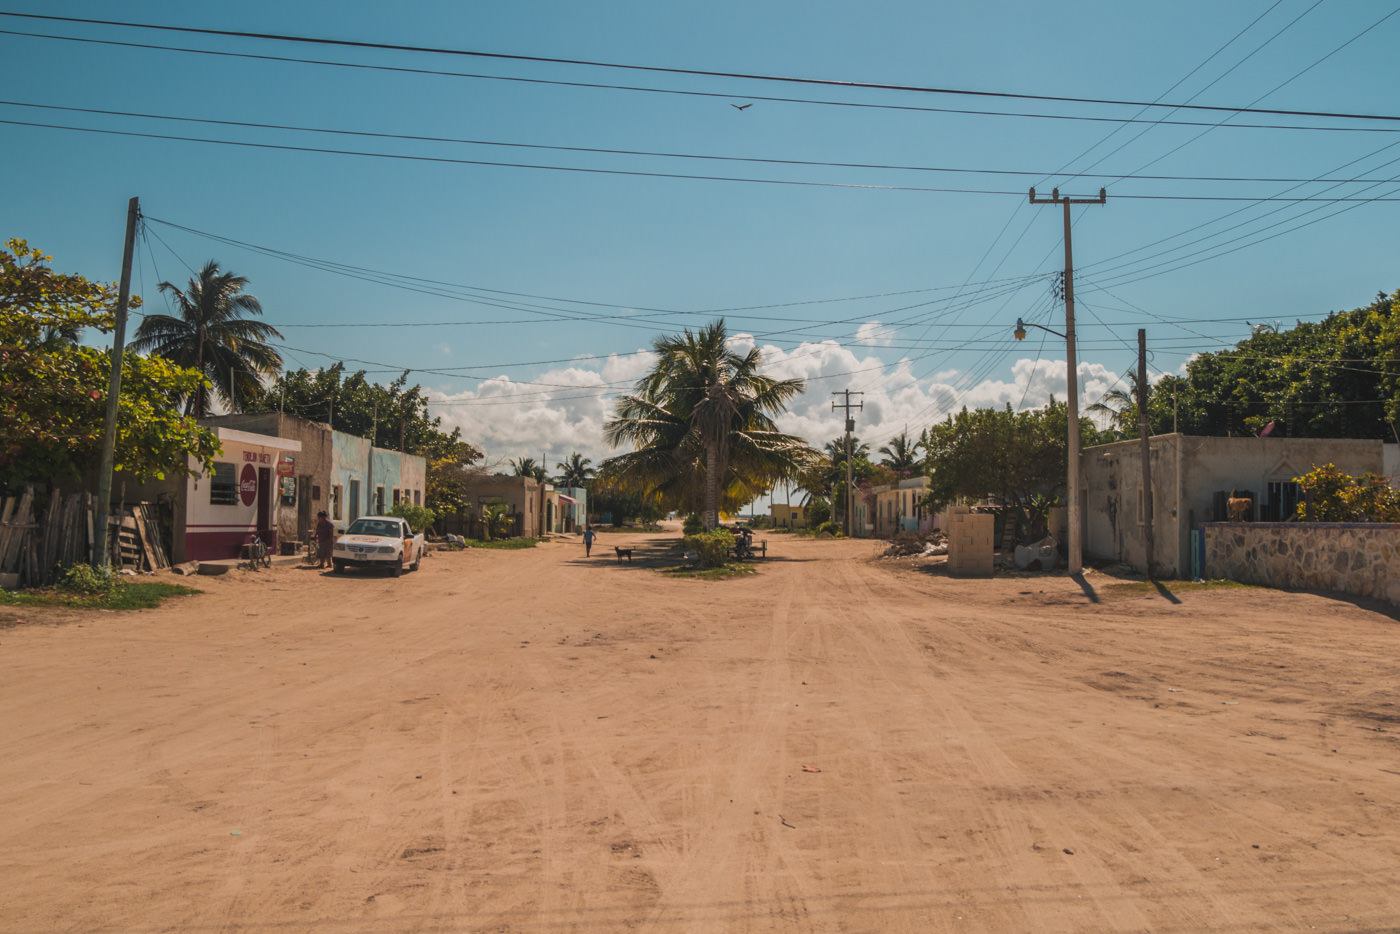 Straße in Las Coloradas in Mexiko